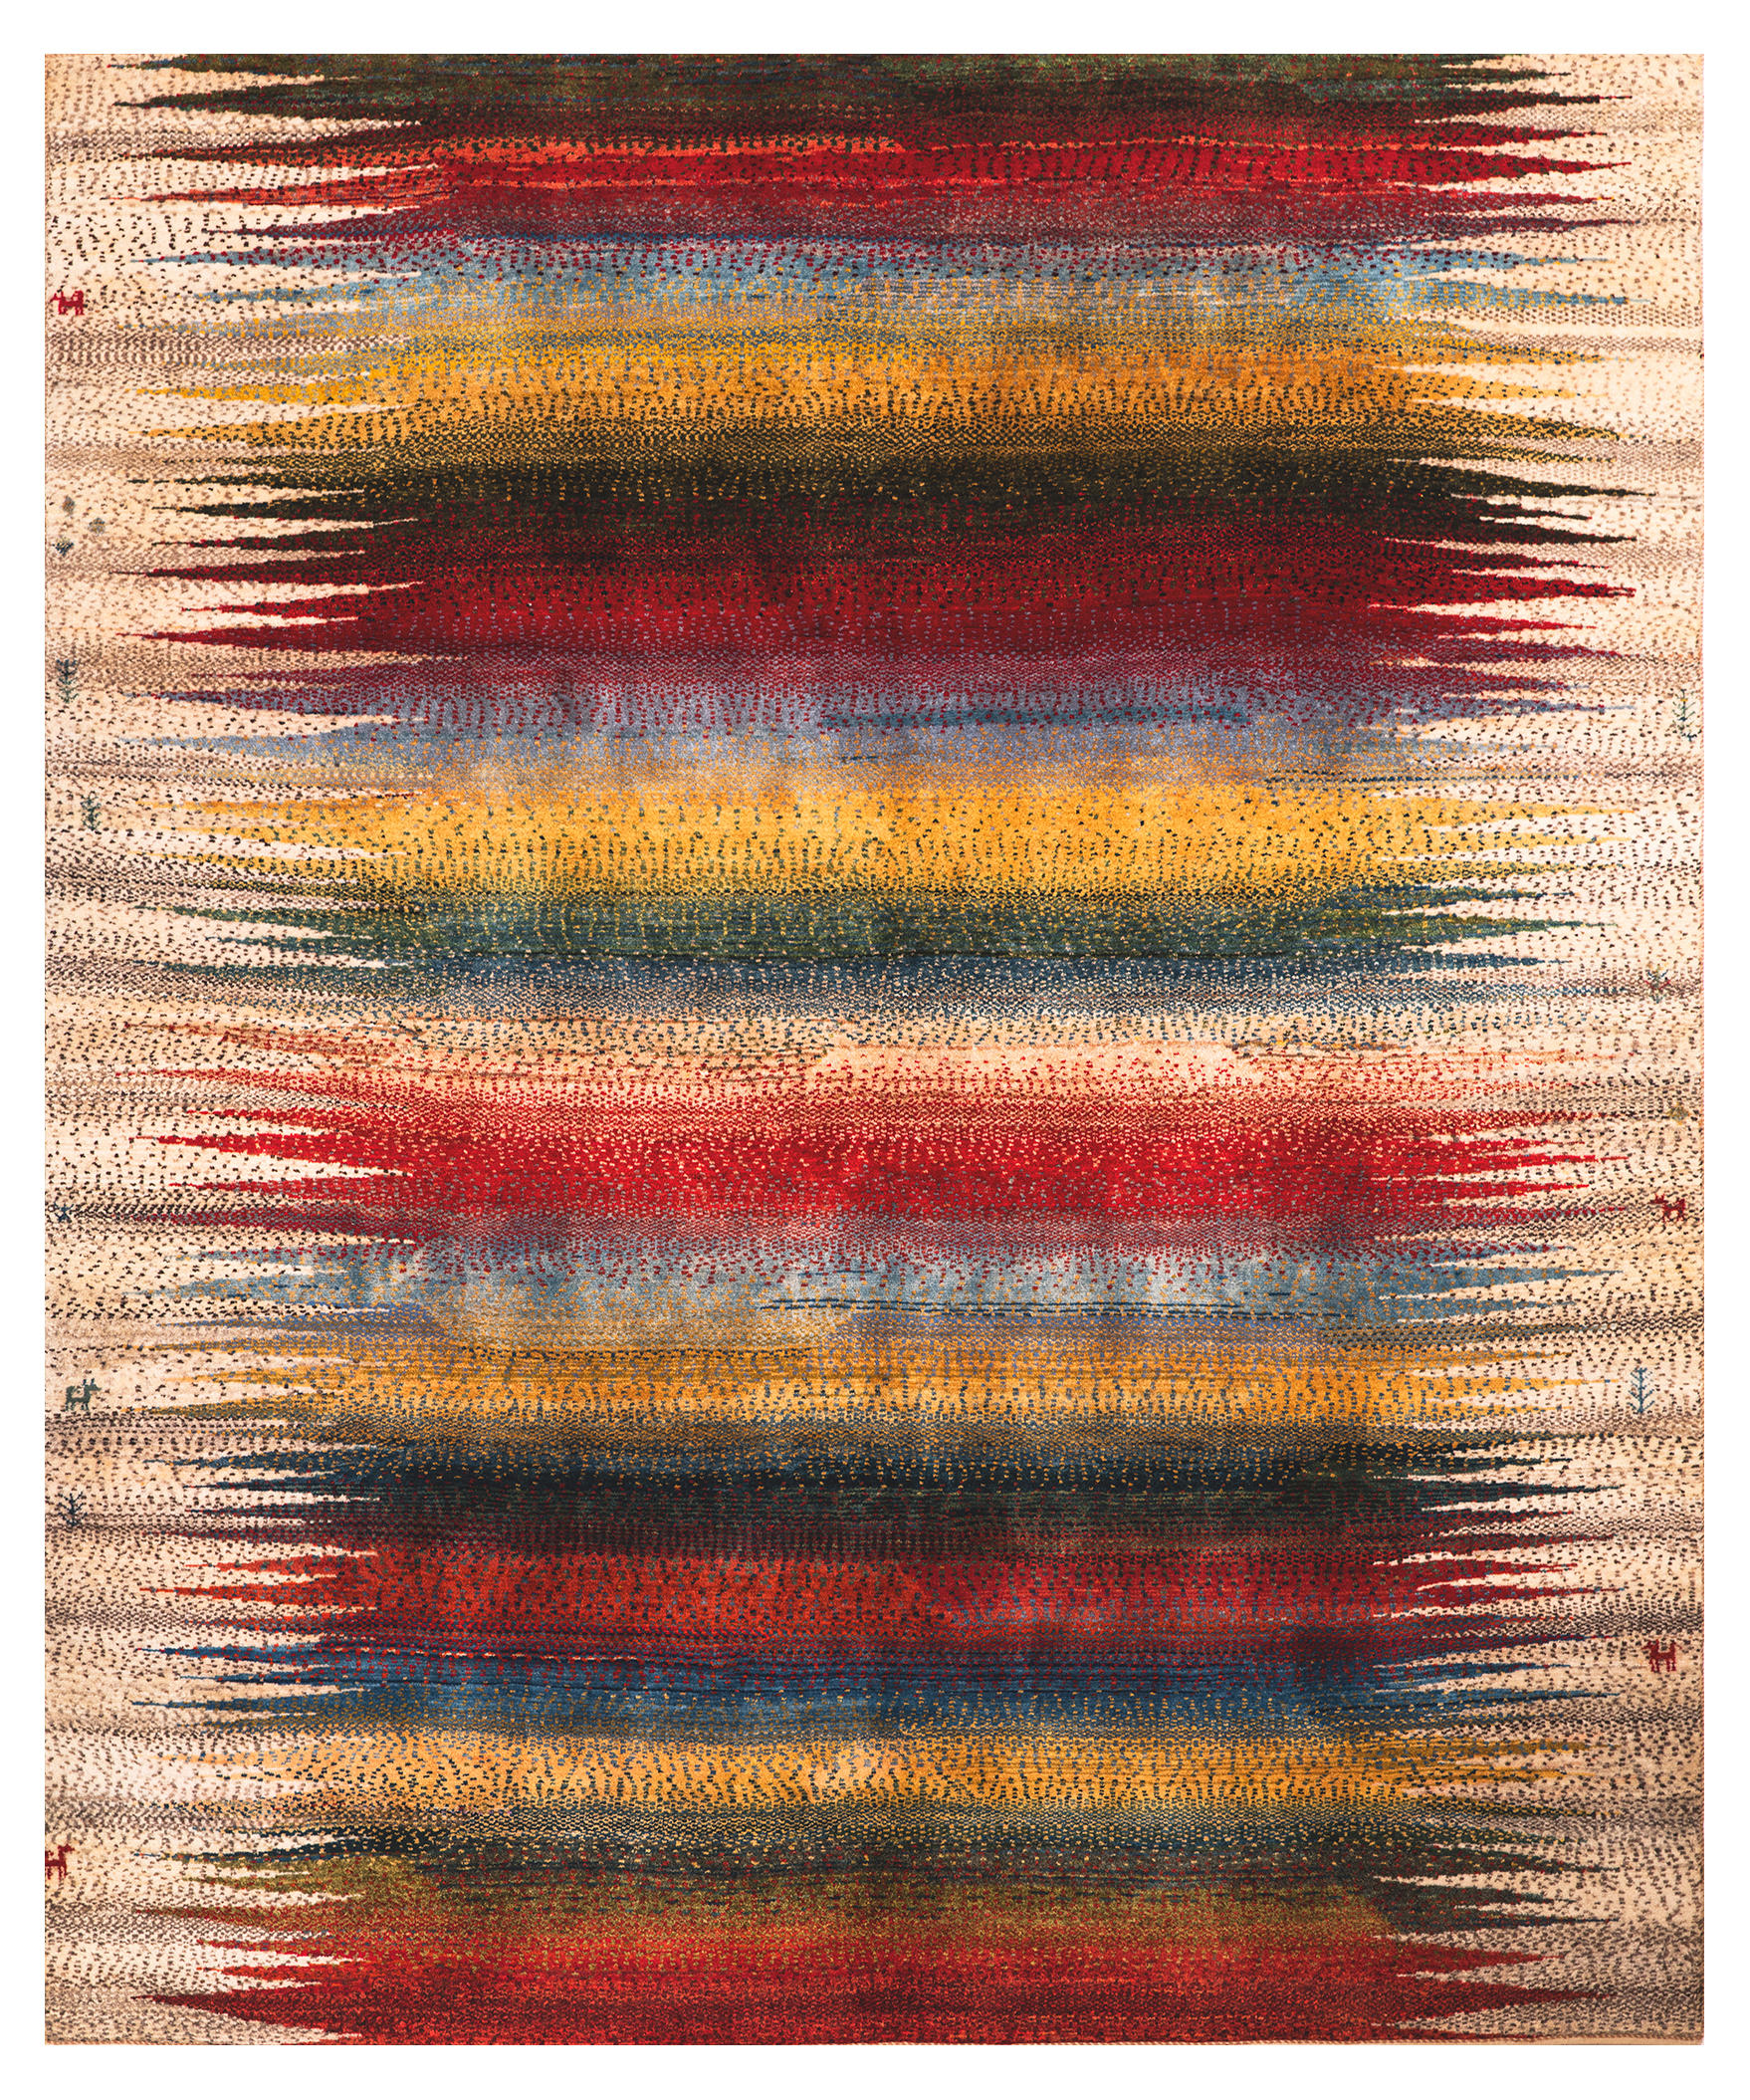 Gabbehs Abstract Amp Plain Mirage 5 Rugs From Zollanvari